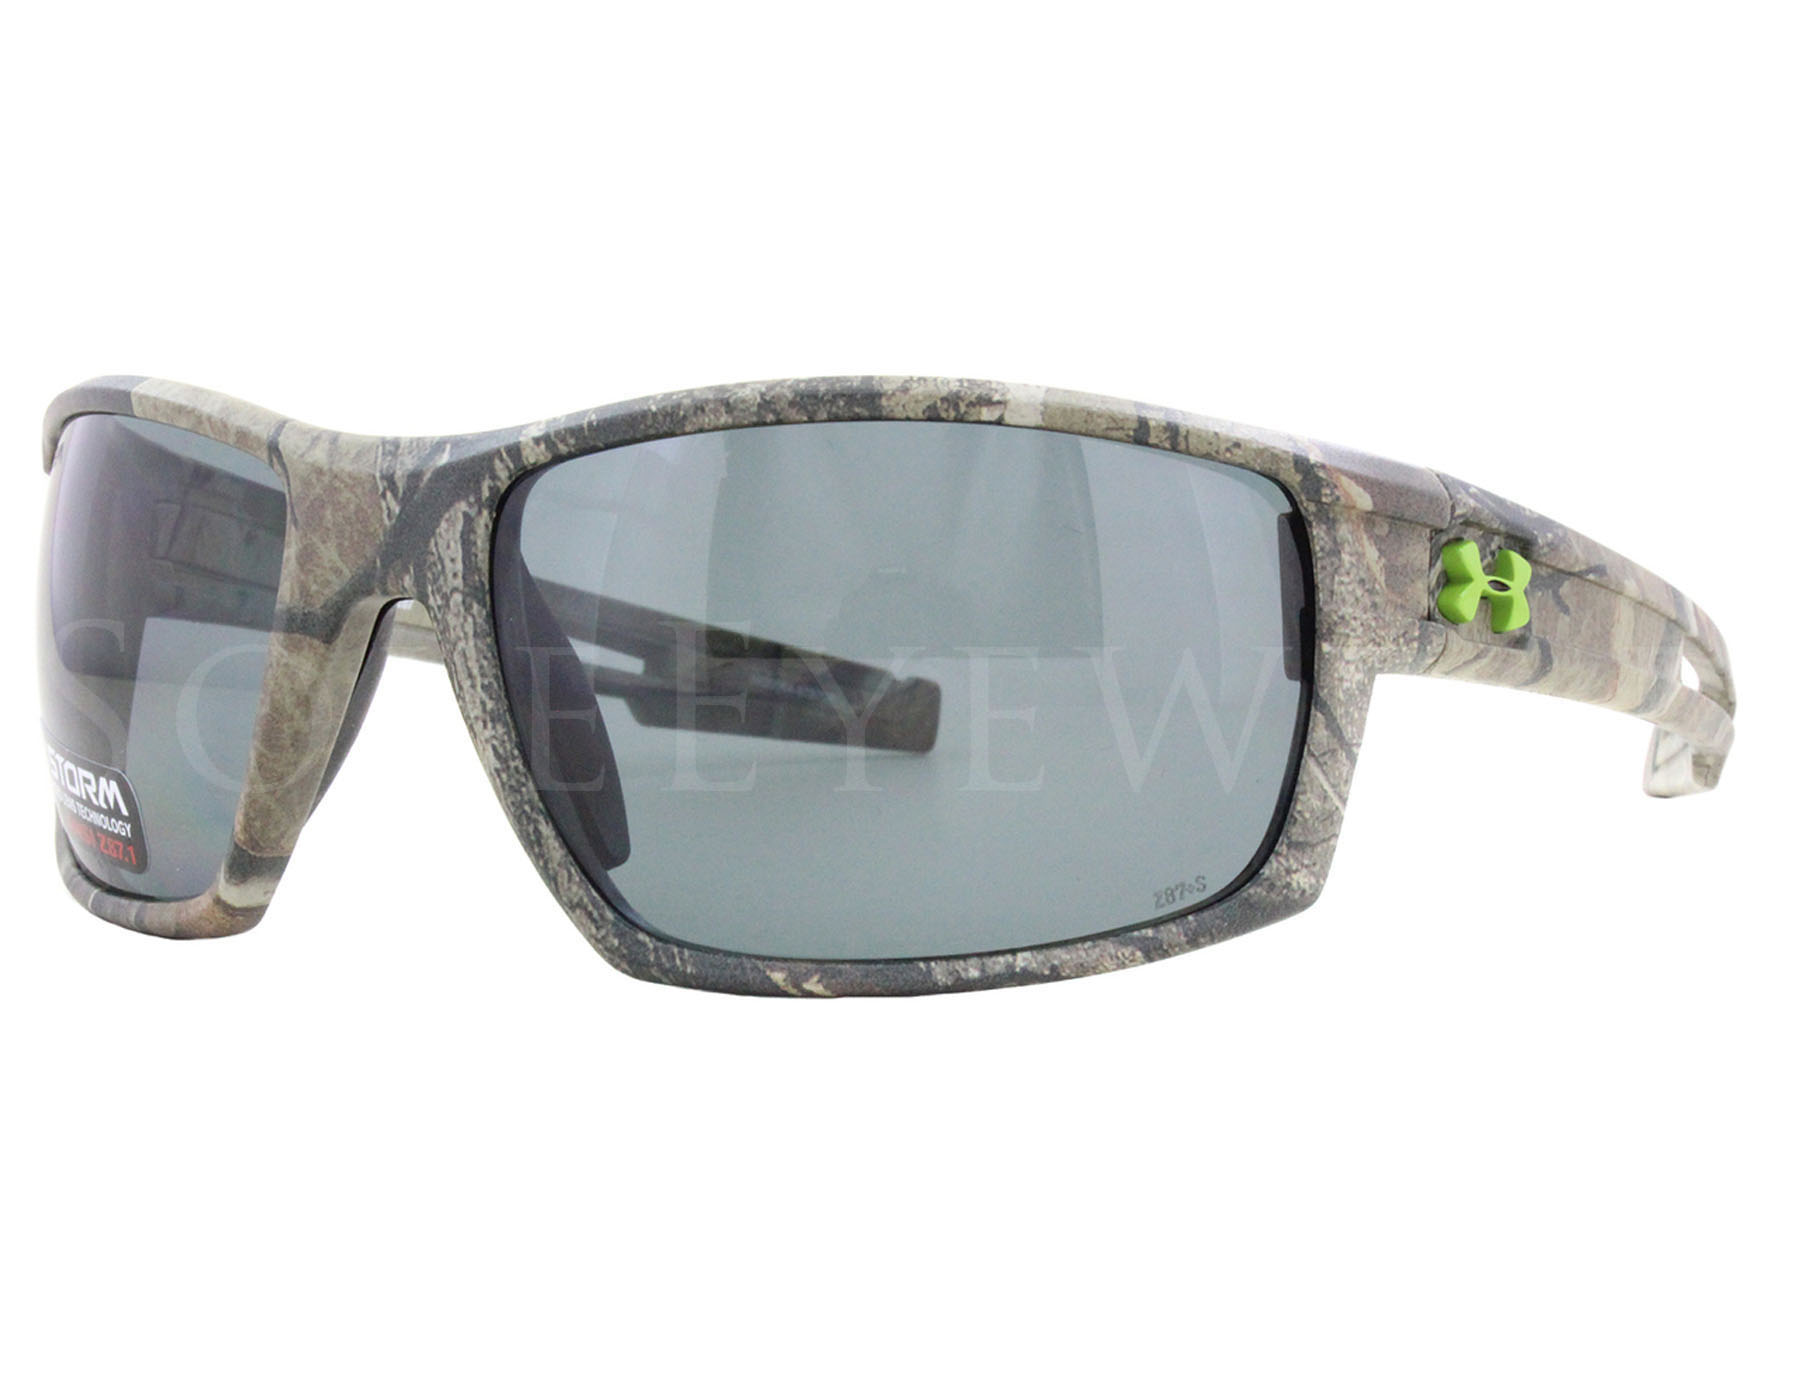 25b3186ccbb4 Details about NEW Under Armour Captain Realtree Storm Gray Polarized 8630064-878708  Sunglasses